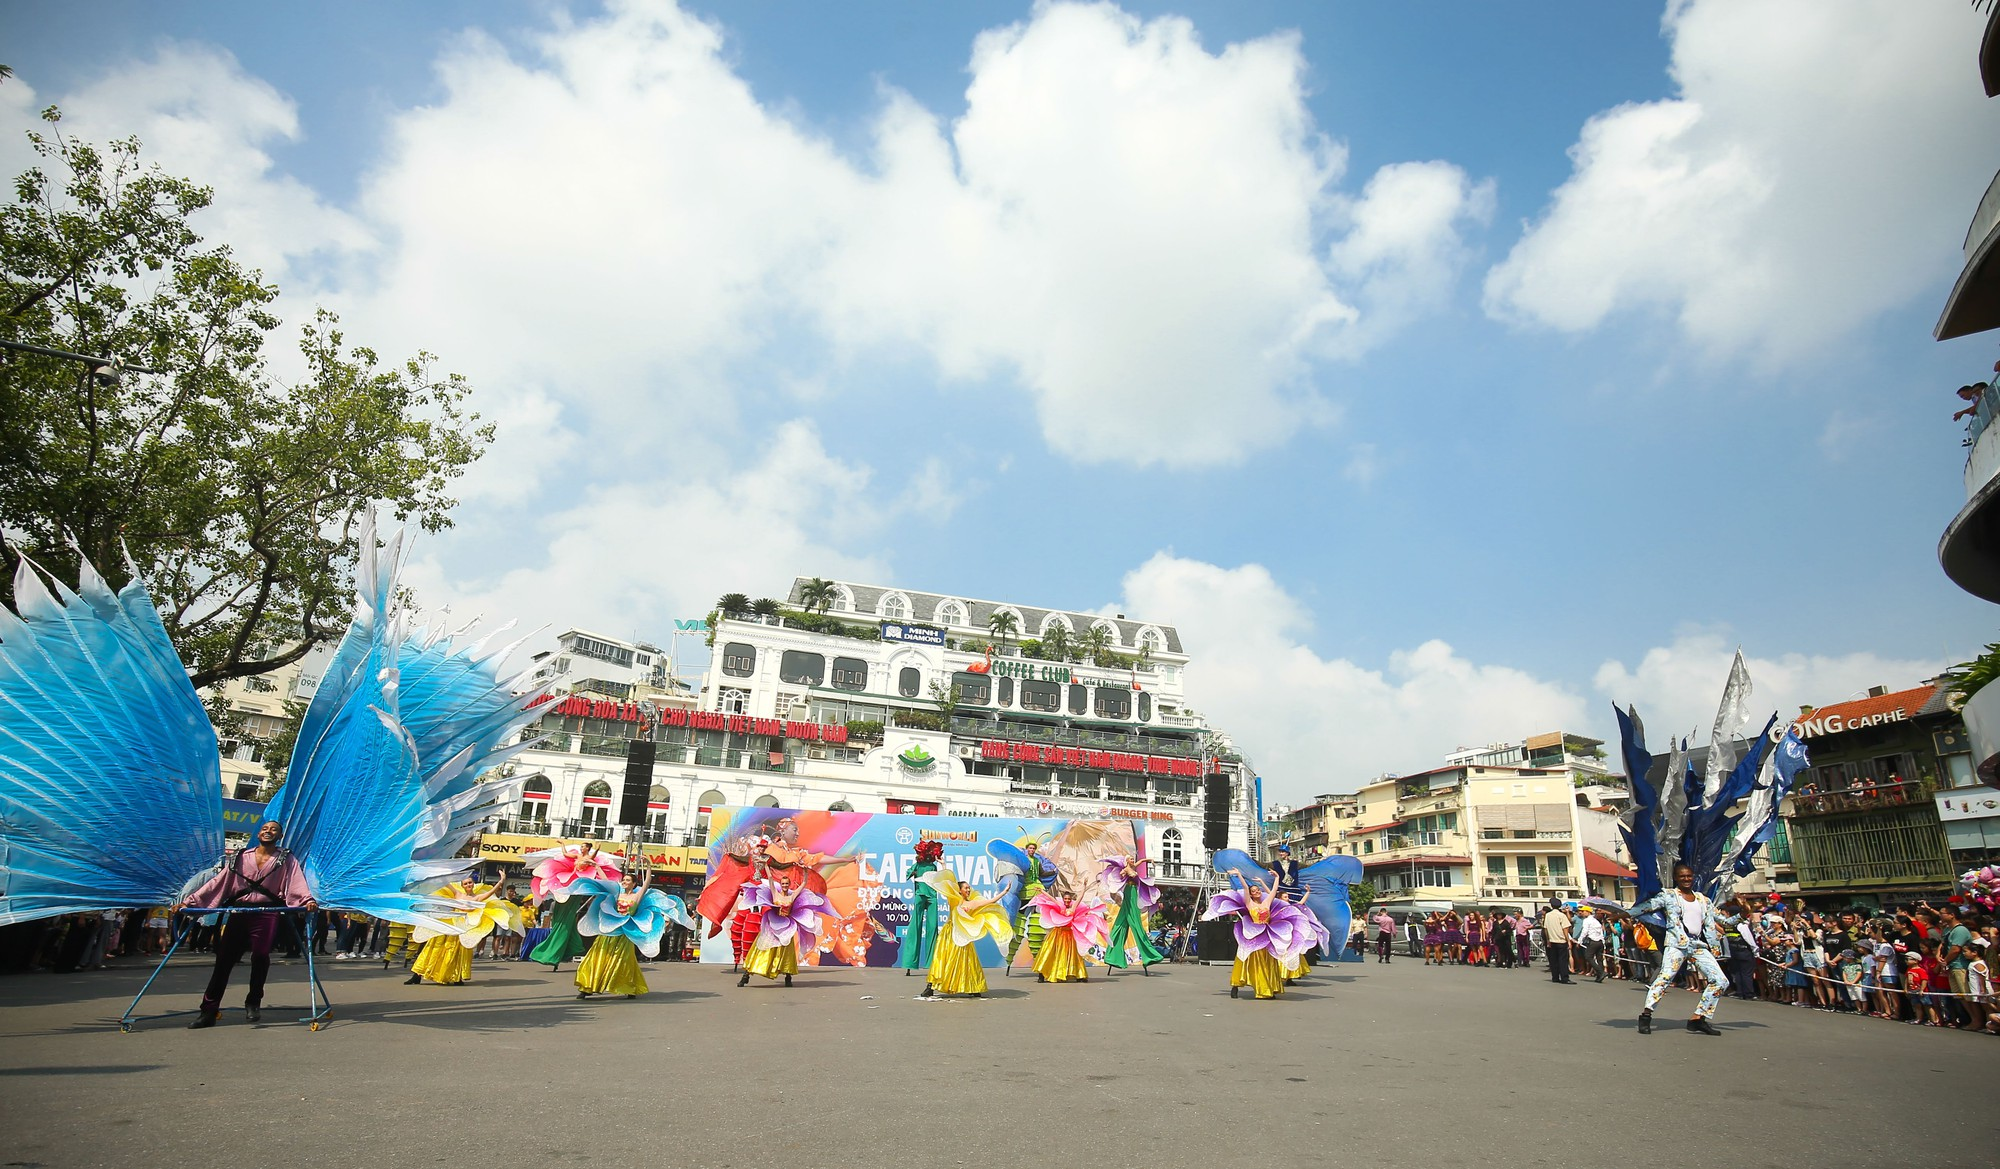 carnival sun world ha noi 610 (79)